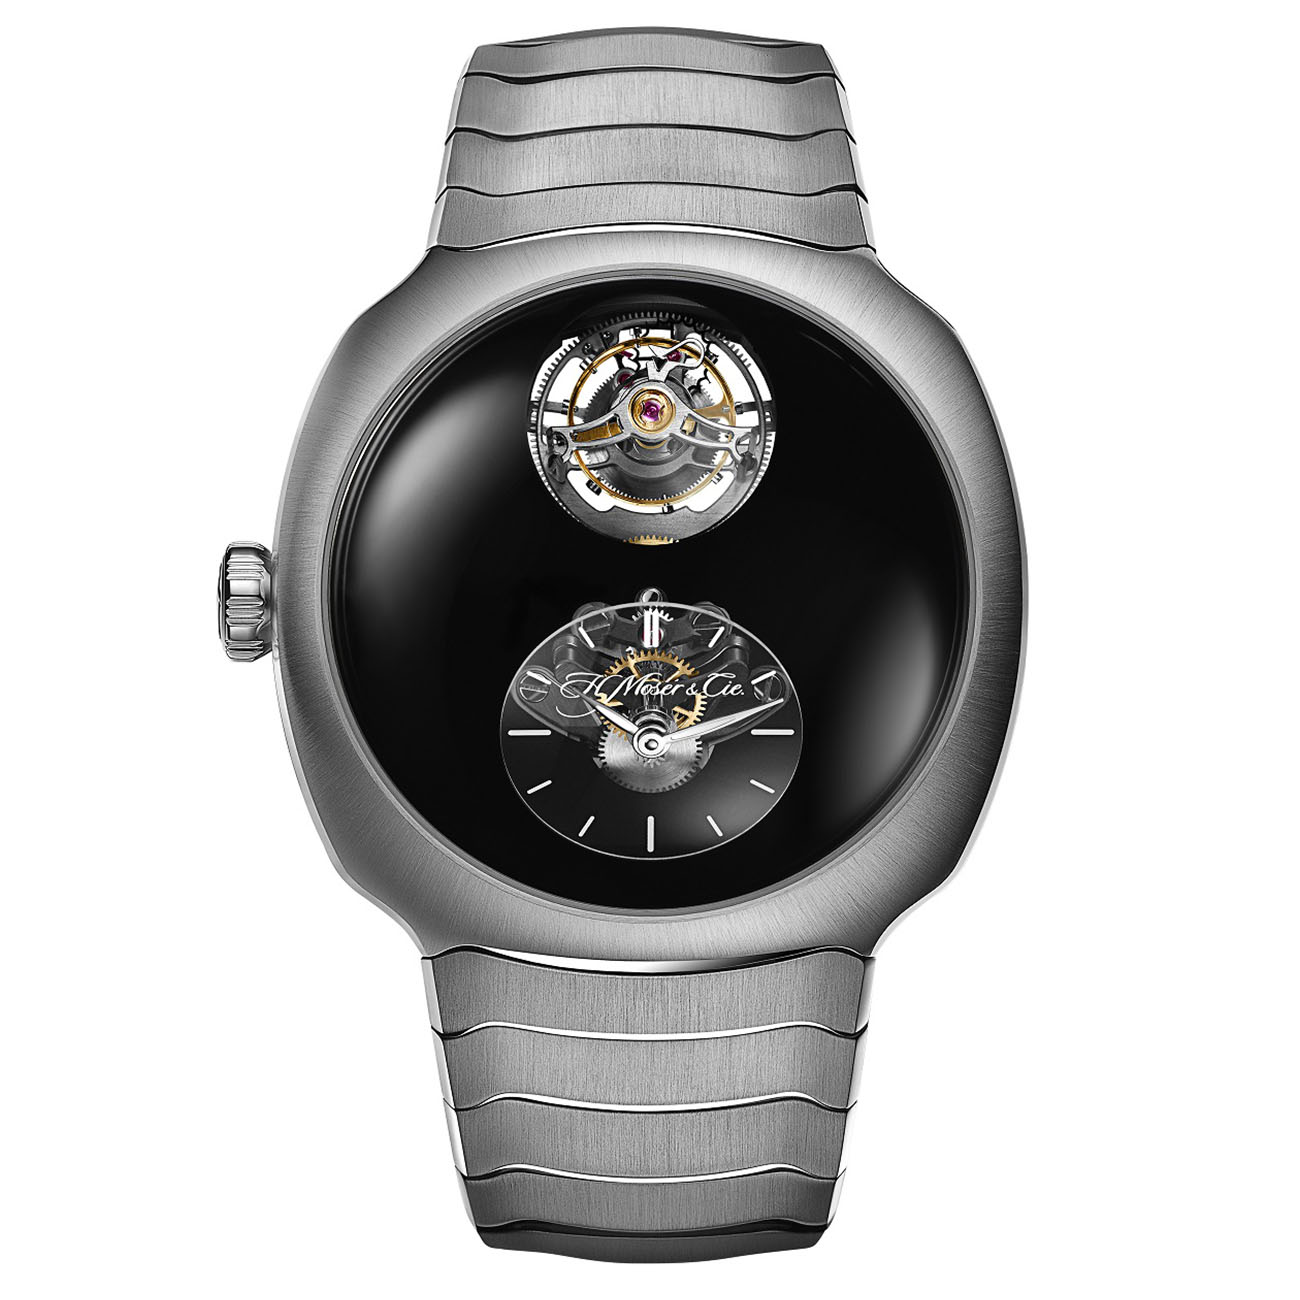 H Moser Cie only watch 2021 1